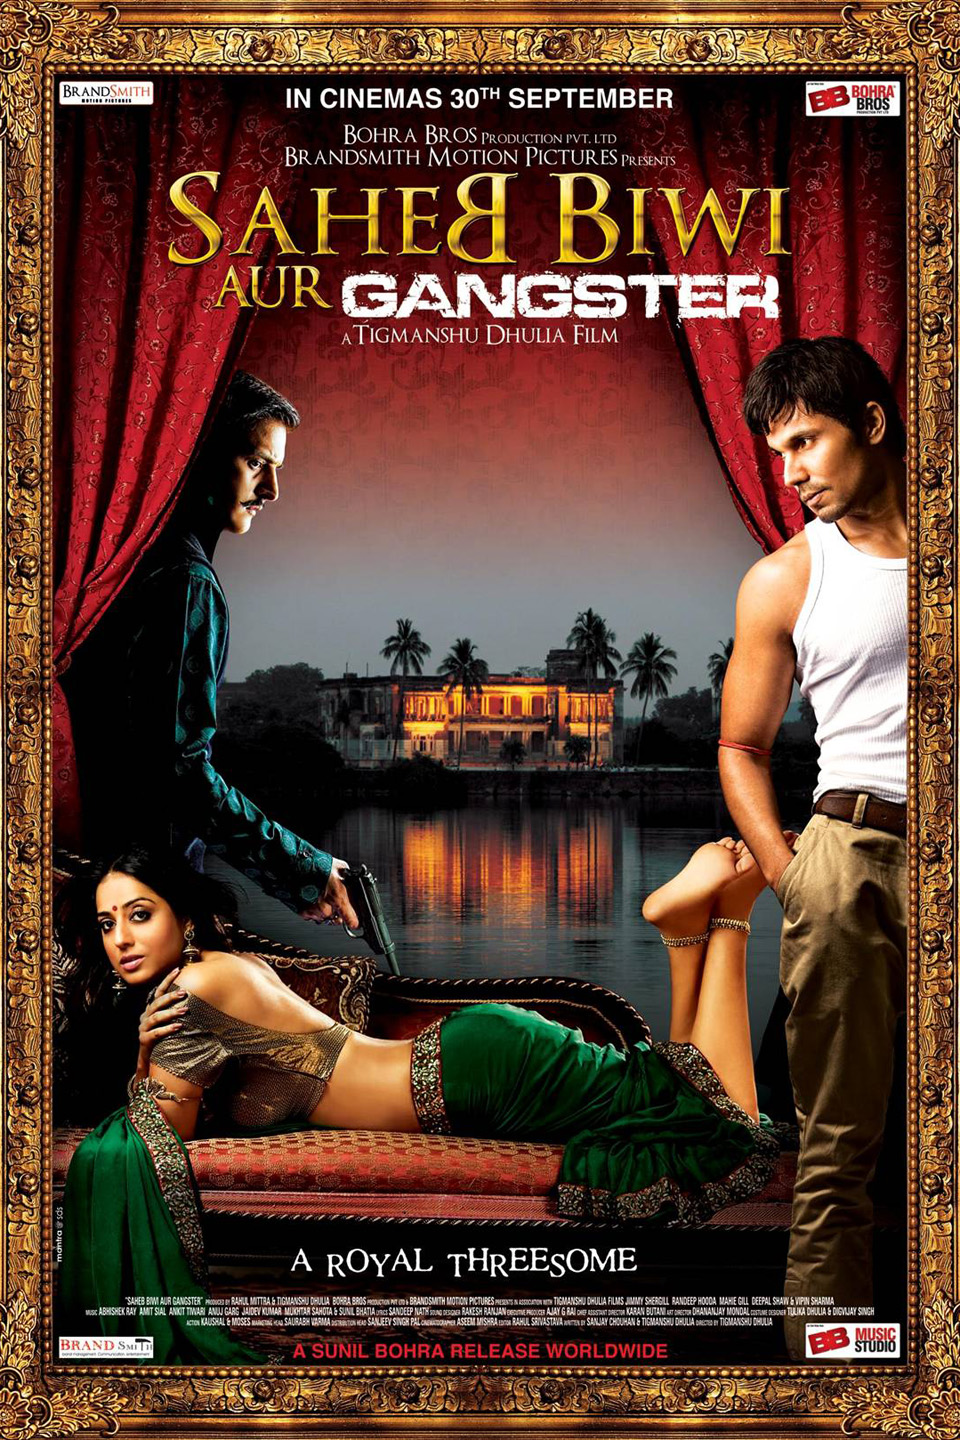 Saheb Biwi Aur Gangster 2011 Hindi Full Movie HD Download 720p Bluray